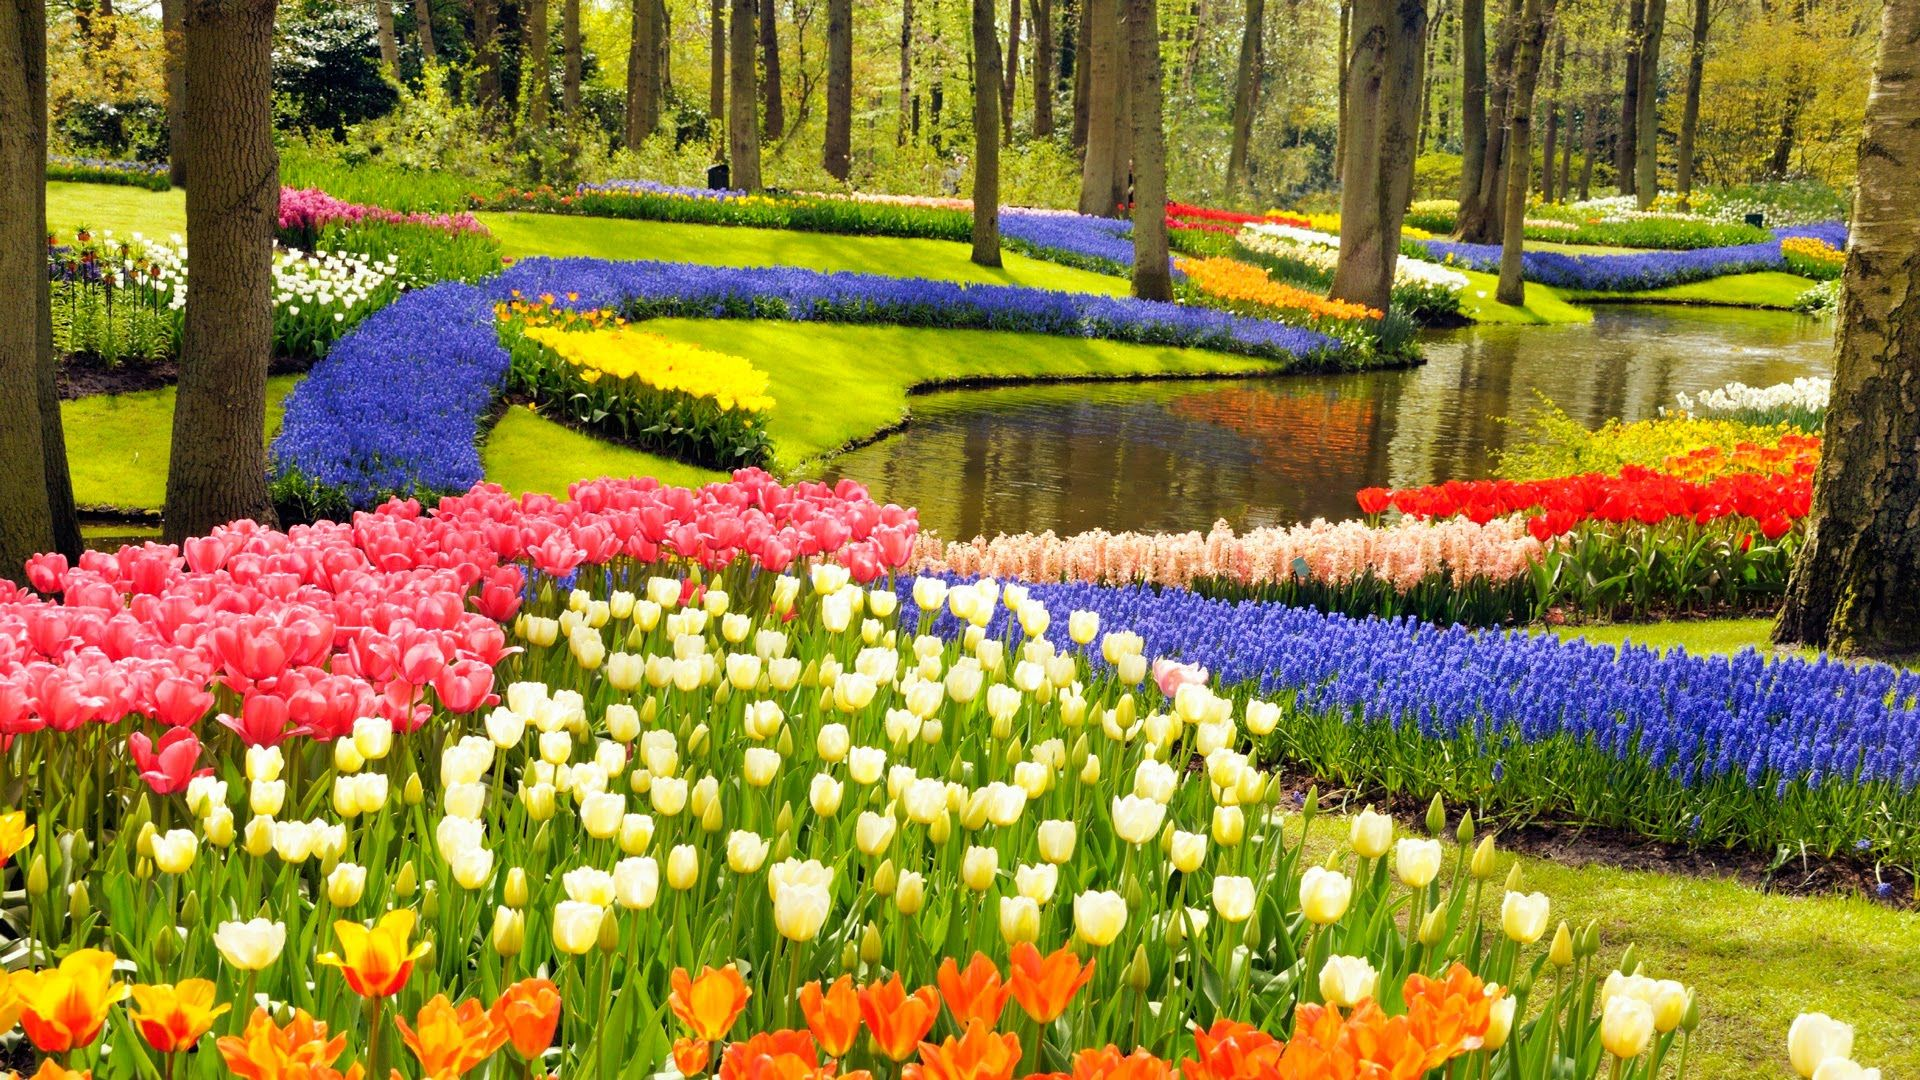 644c1c0db72d97fde7de75ae46224874 - Keukenhof Gardens To Amsterdam How Far